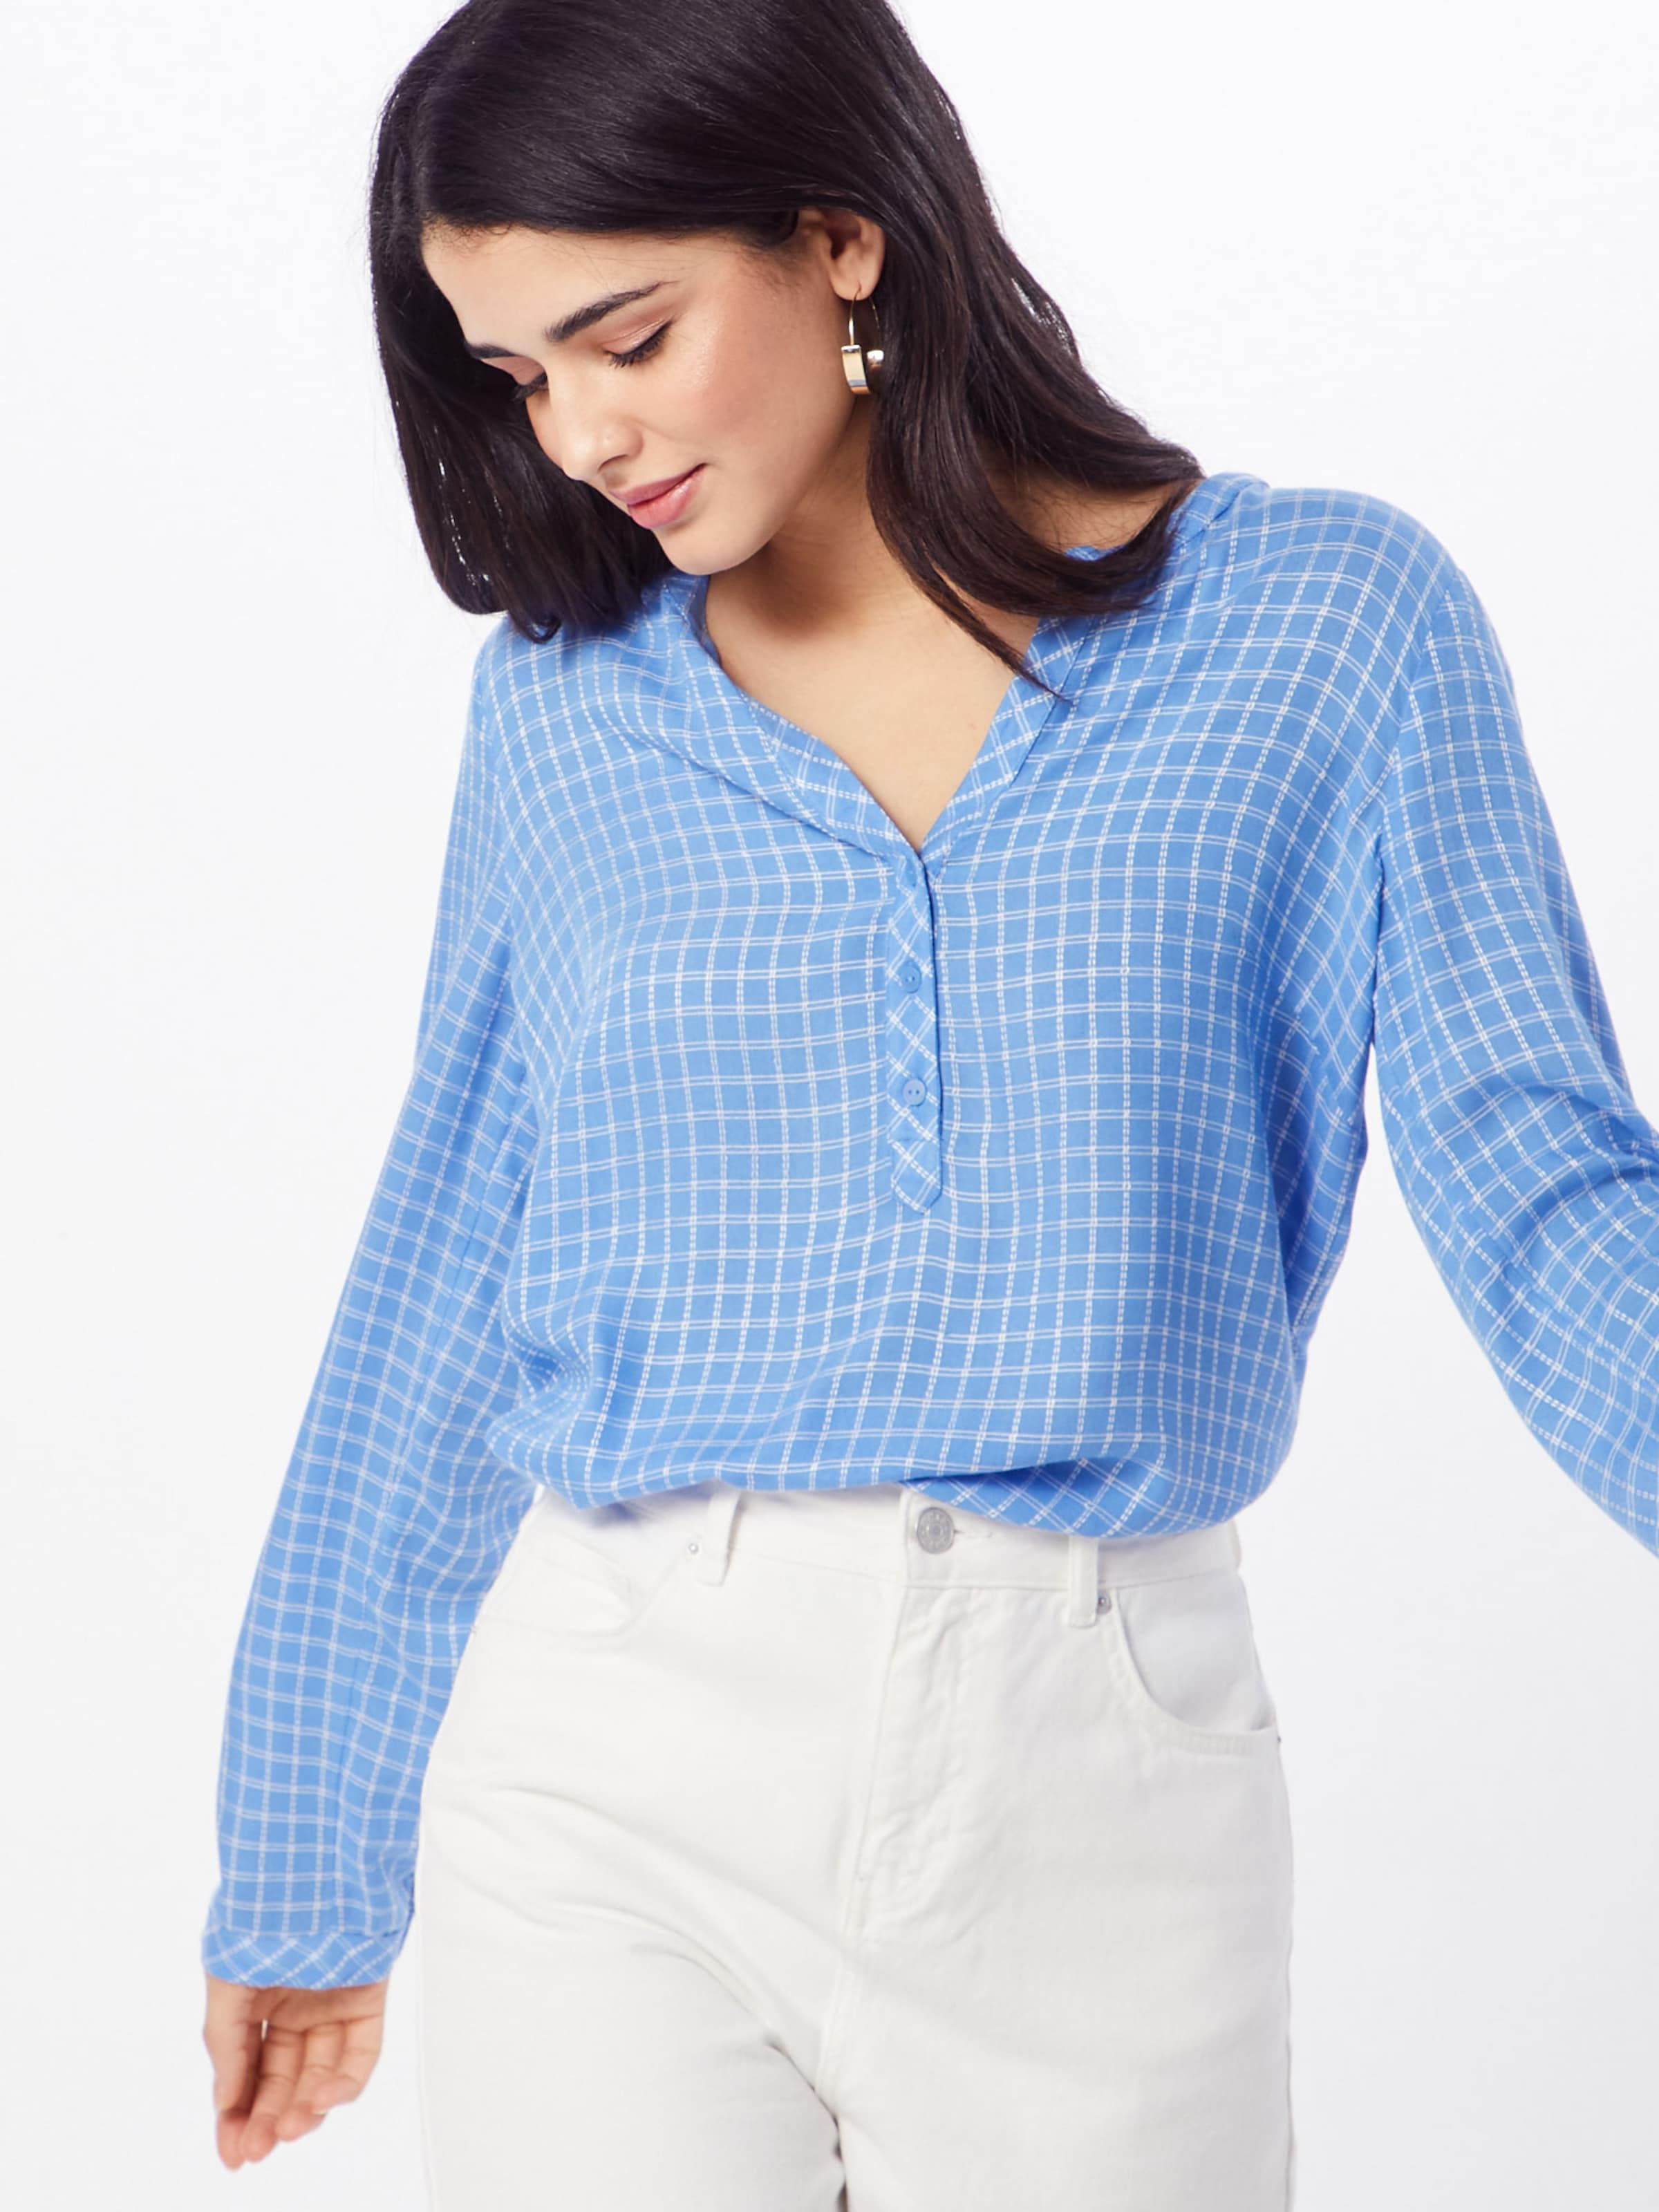 Tailor Tom In Tom Bluse HellblauWeiß Bluse Tailor In vnm0N8wO